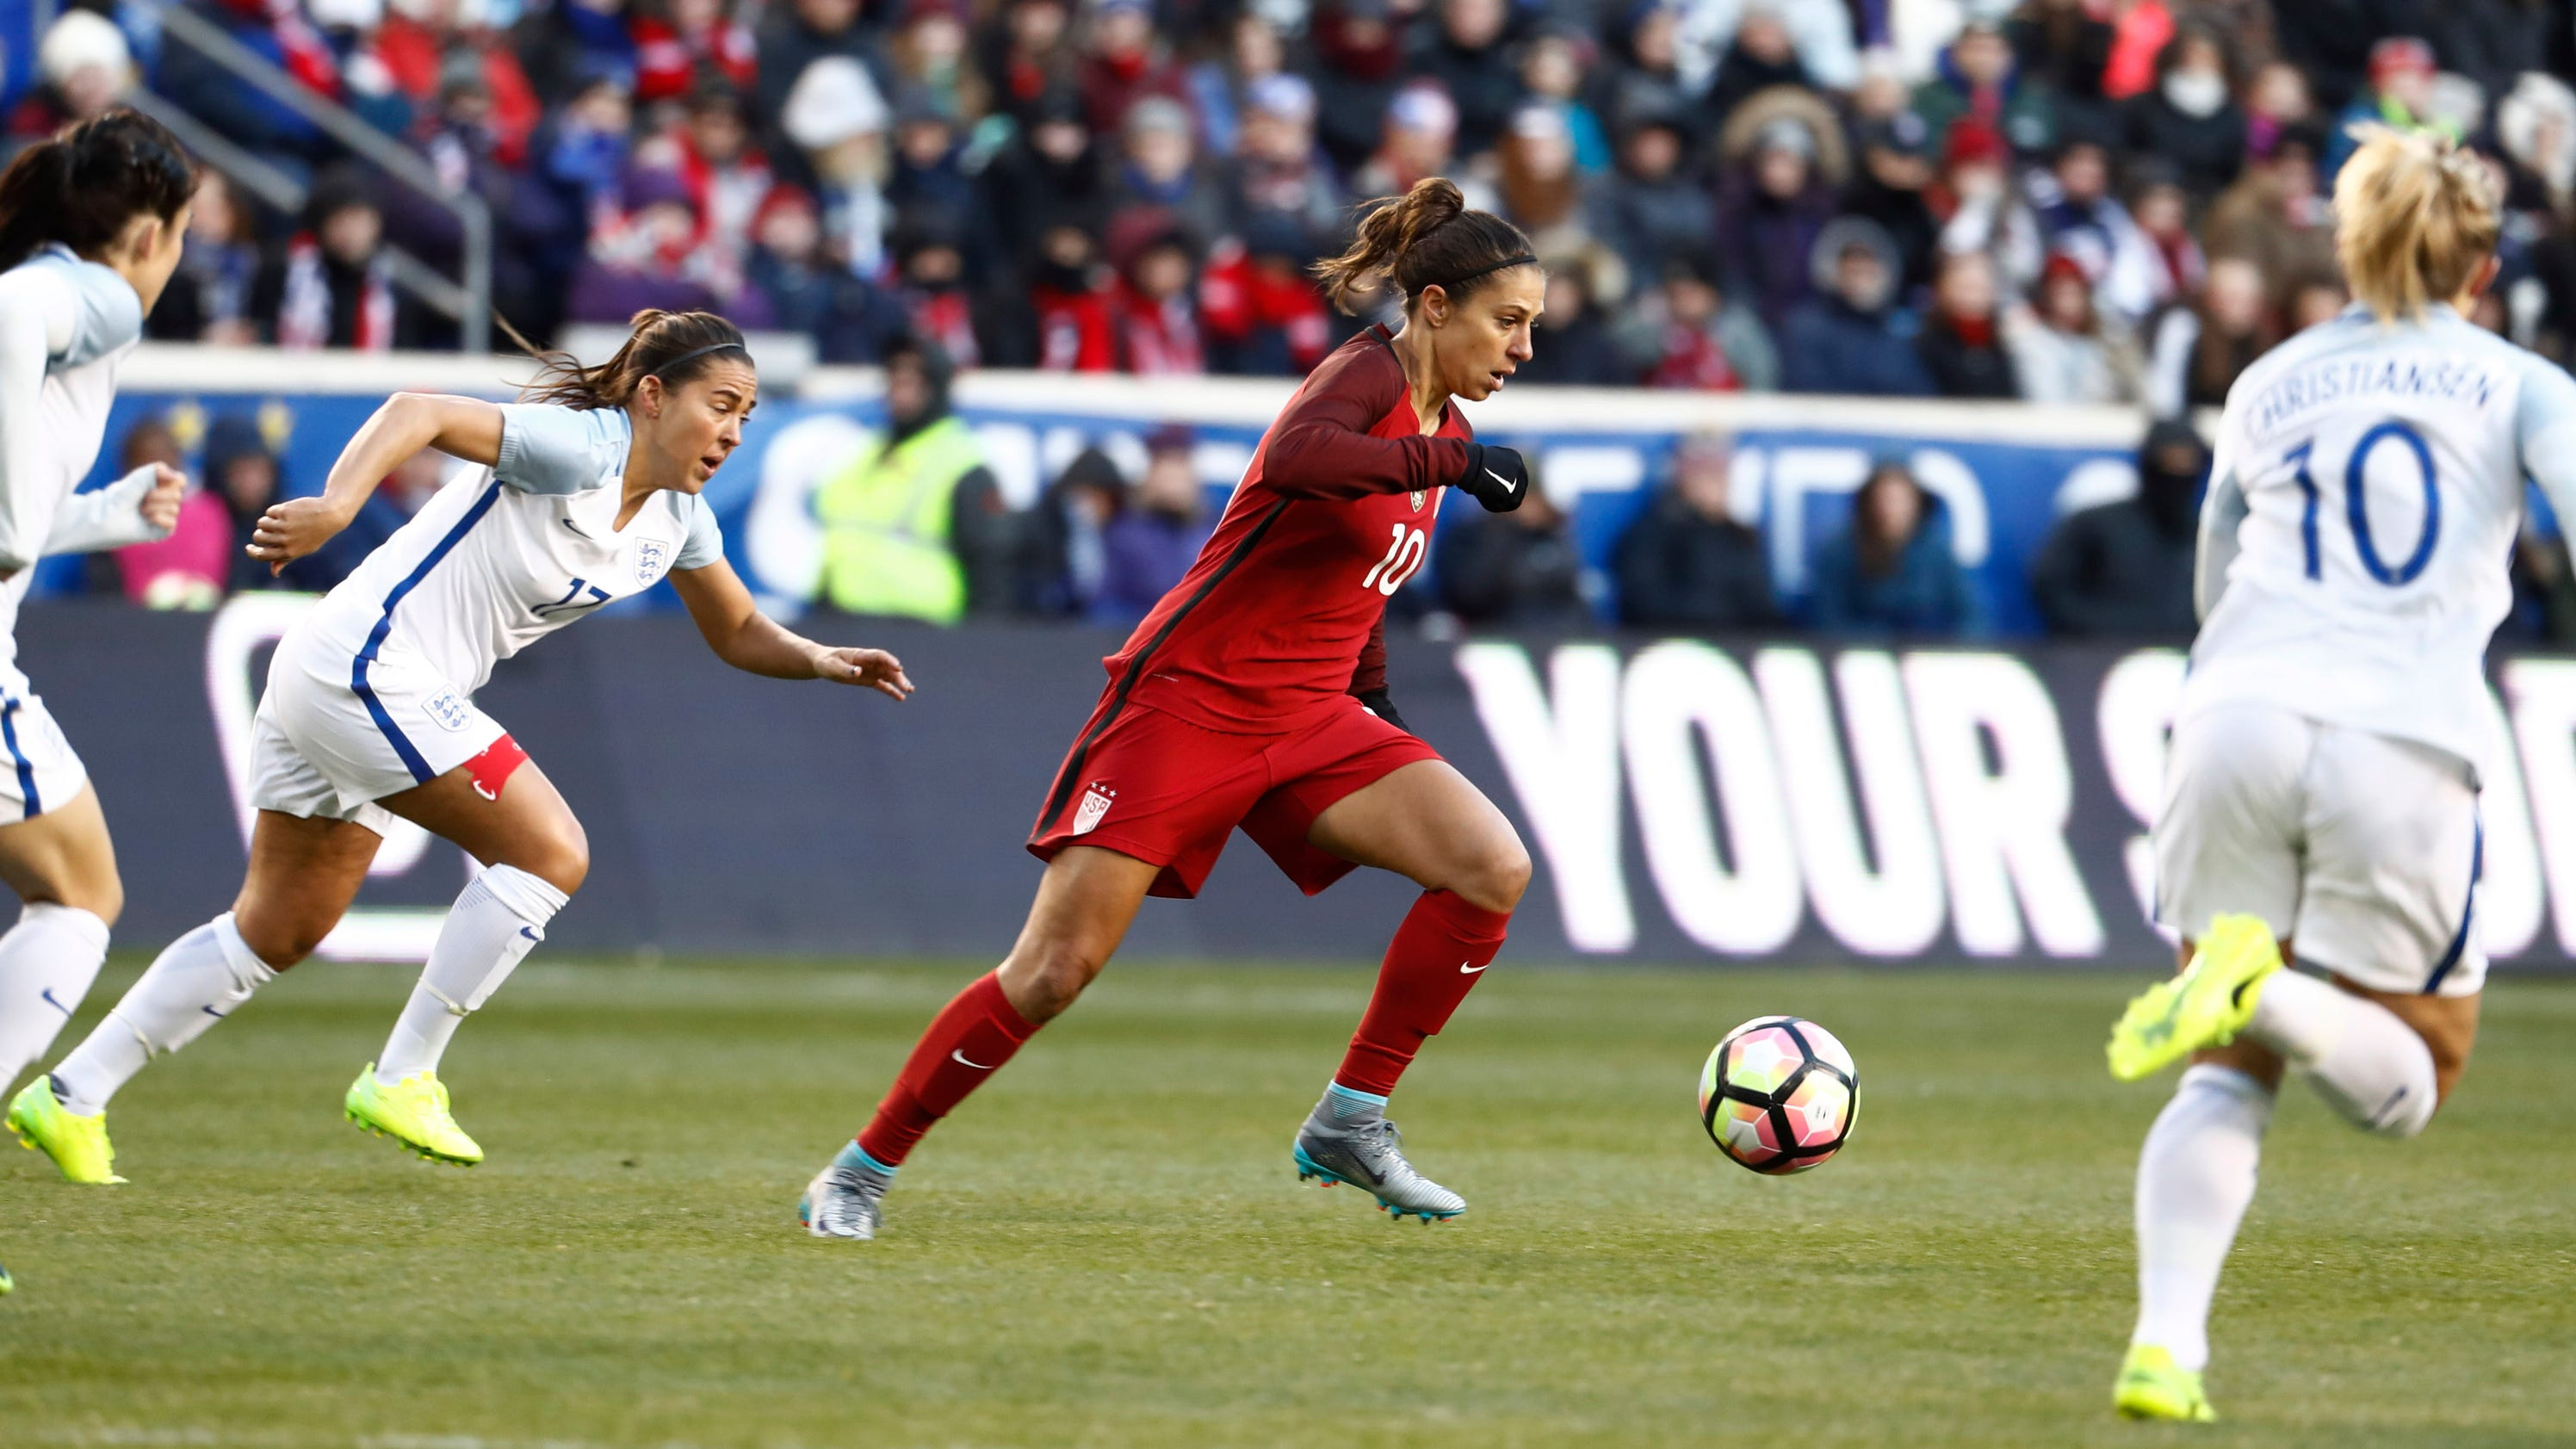 England stuns US women 1-0 in SheBelieves Cup soccer